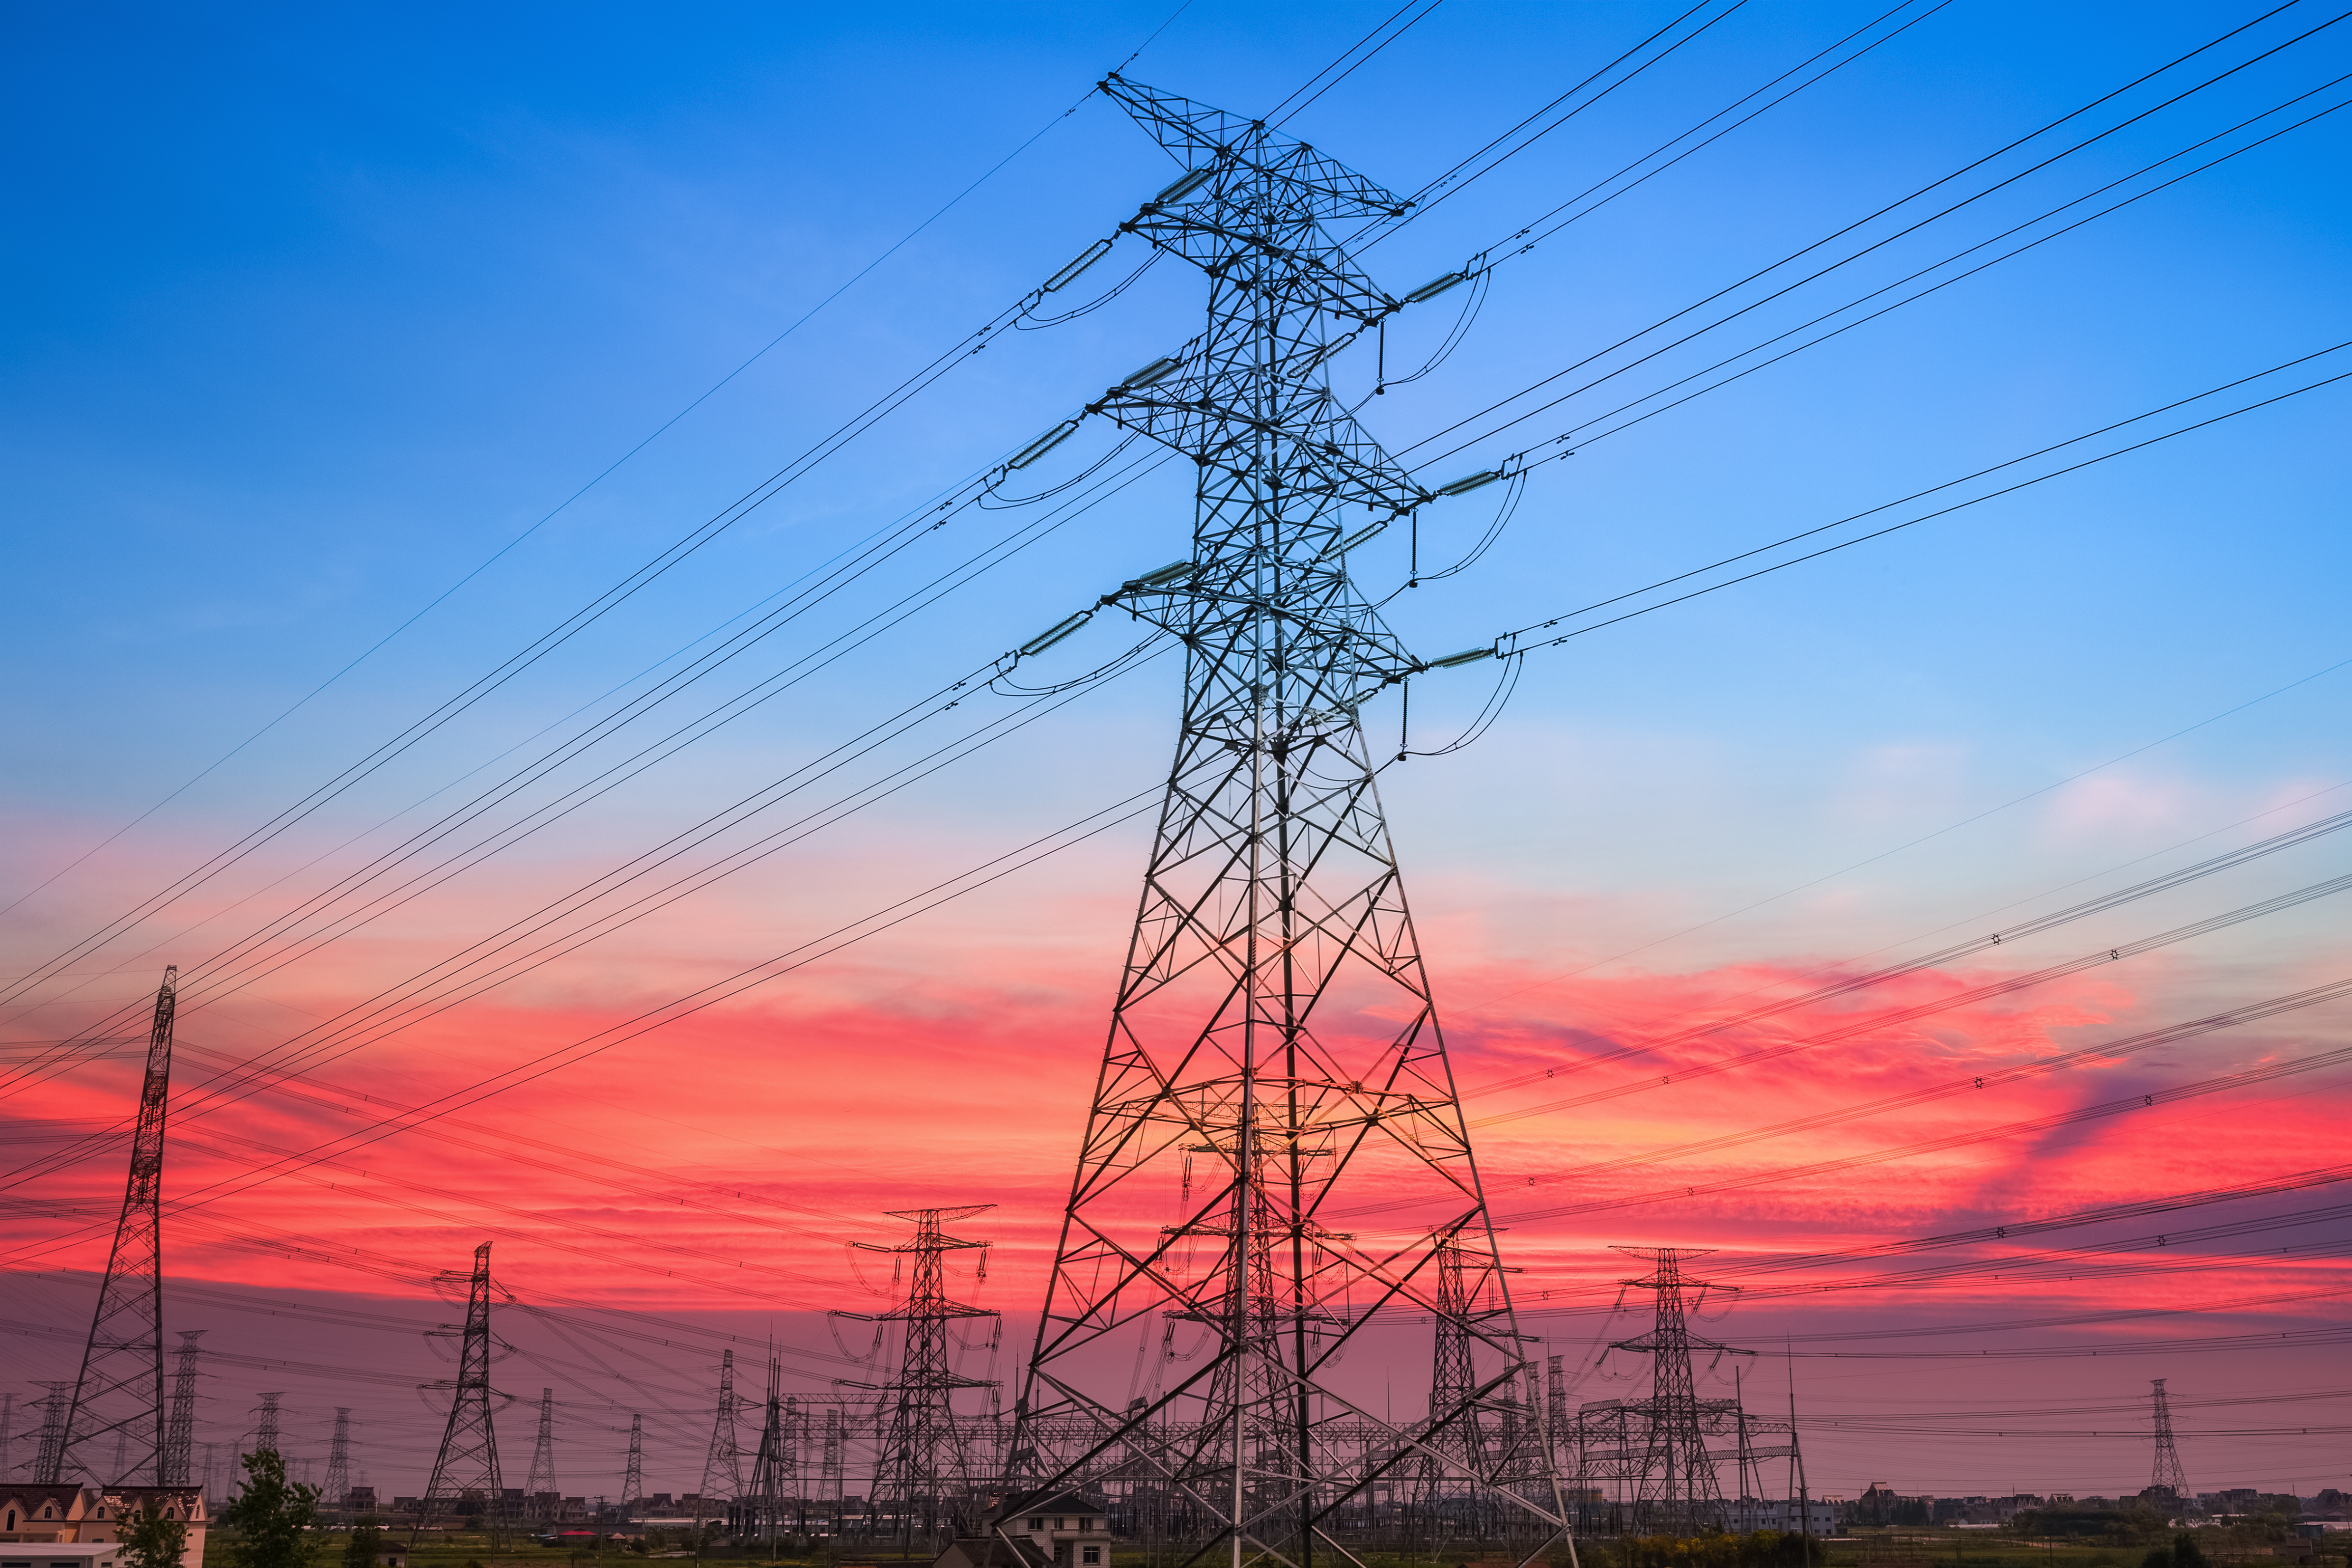 https://watt.co.uk/wp-content/uploads/2020/04/electricity-pylon-in-sunset-PFED56H.jpg